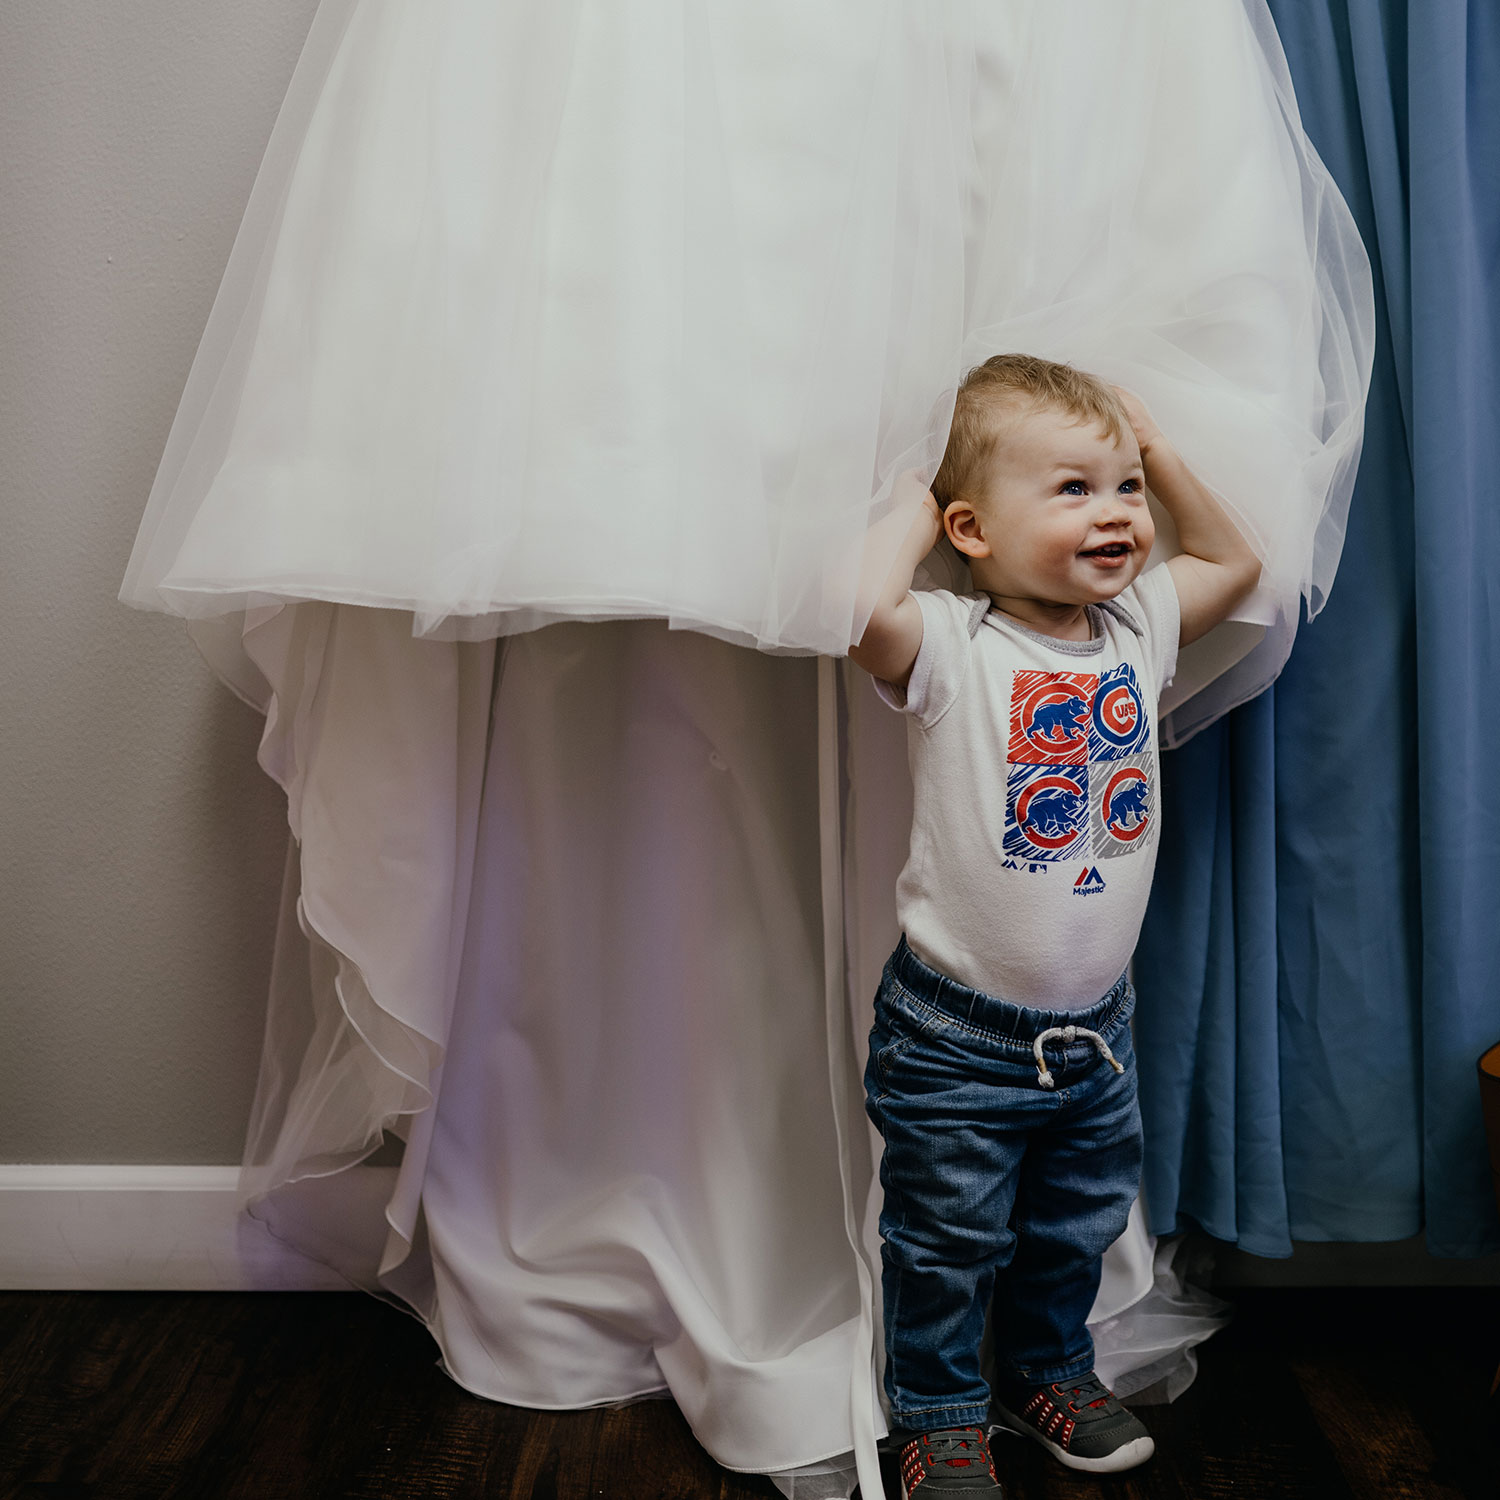 baby-boy-hiding-in-dress-wedding-decades-event-center-moines-iowa-raelyn-ramey-photography-9.jpg